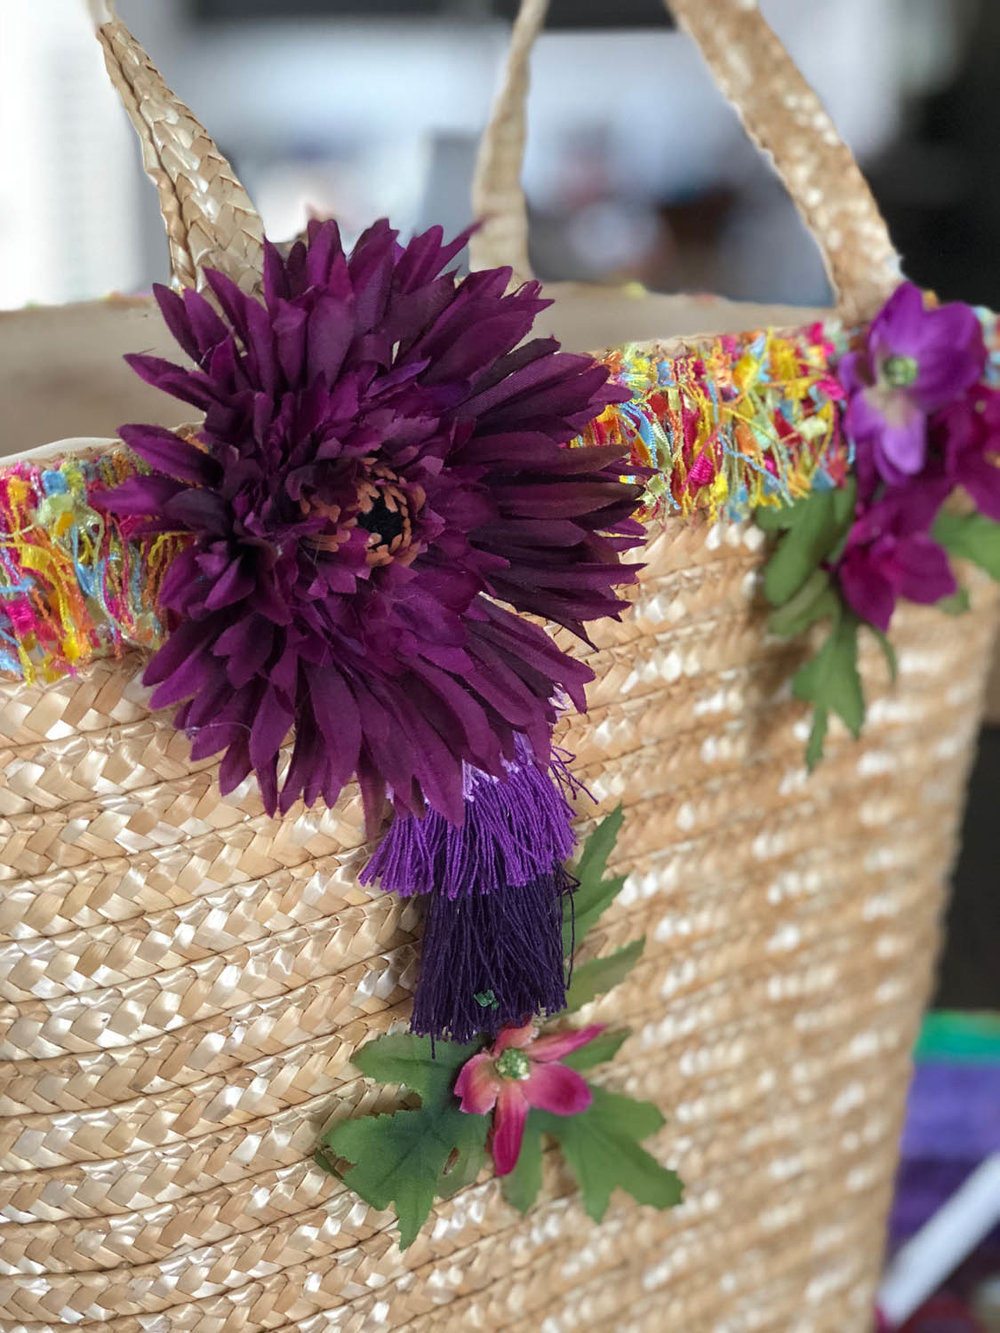 flowers and trim on an embellished straw tote